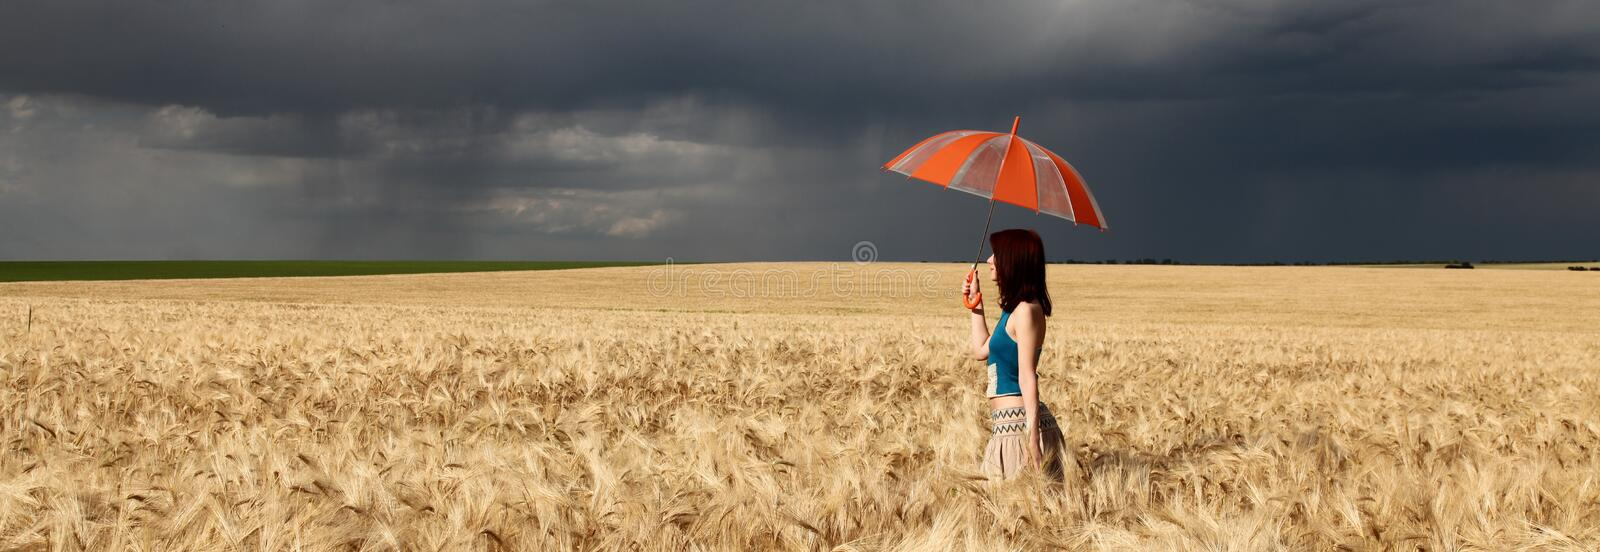 Girl with umbrella at field. in storm royalty free stock image